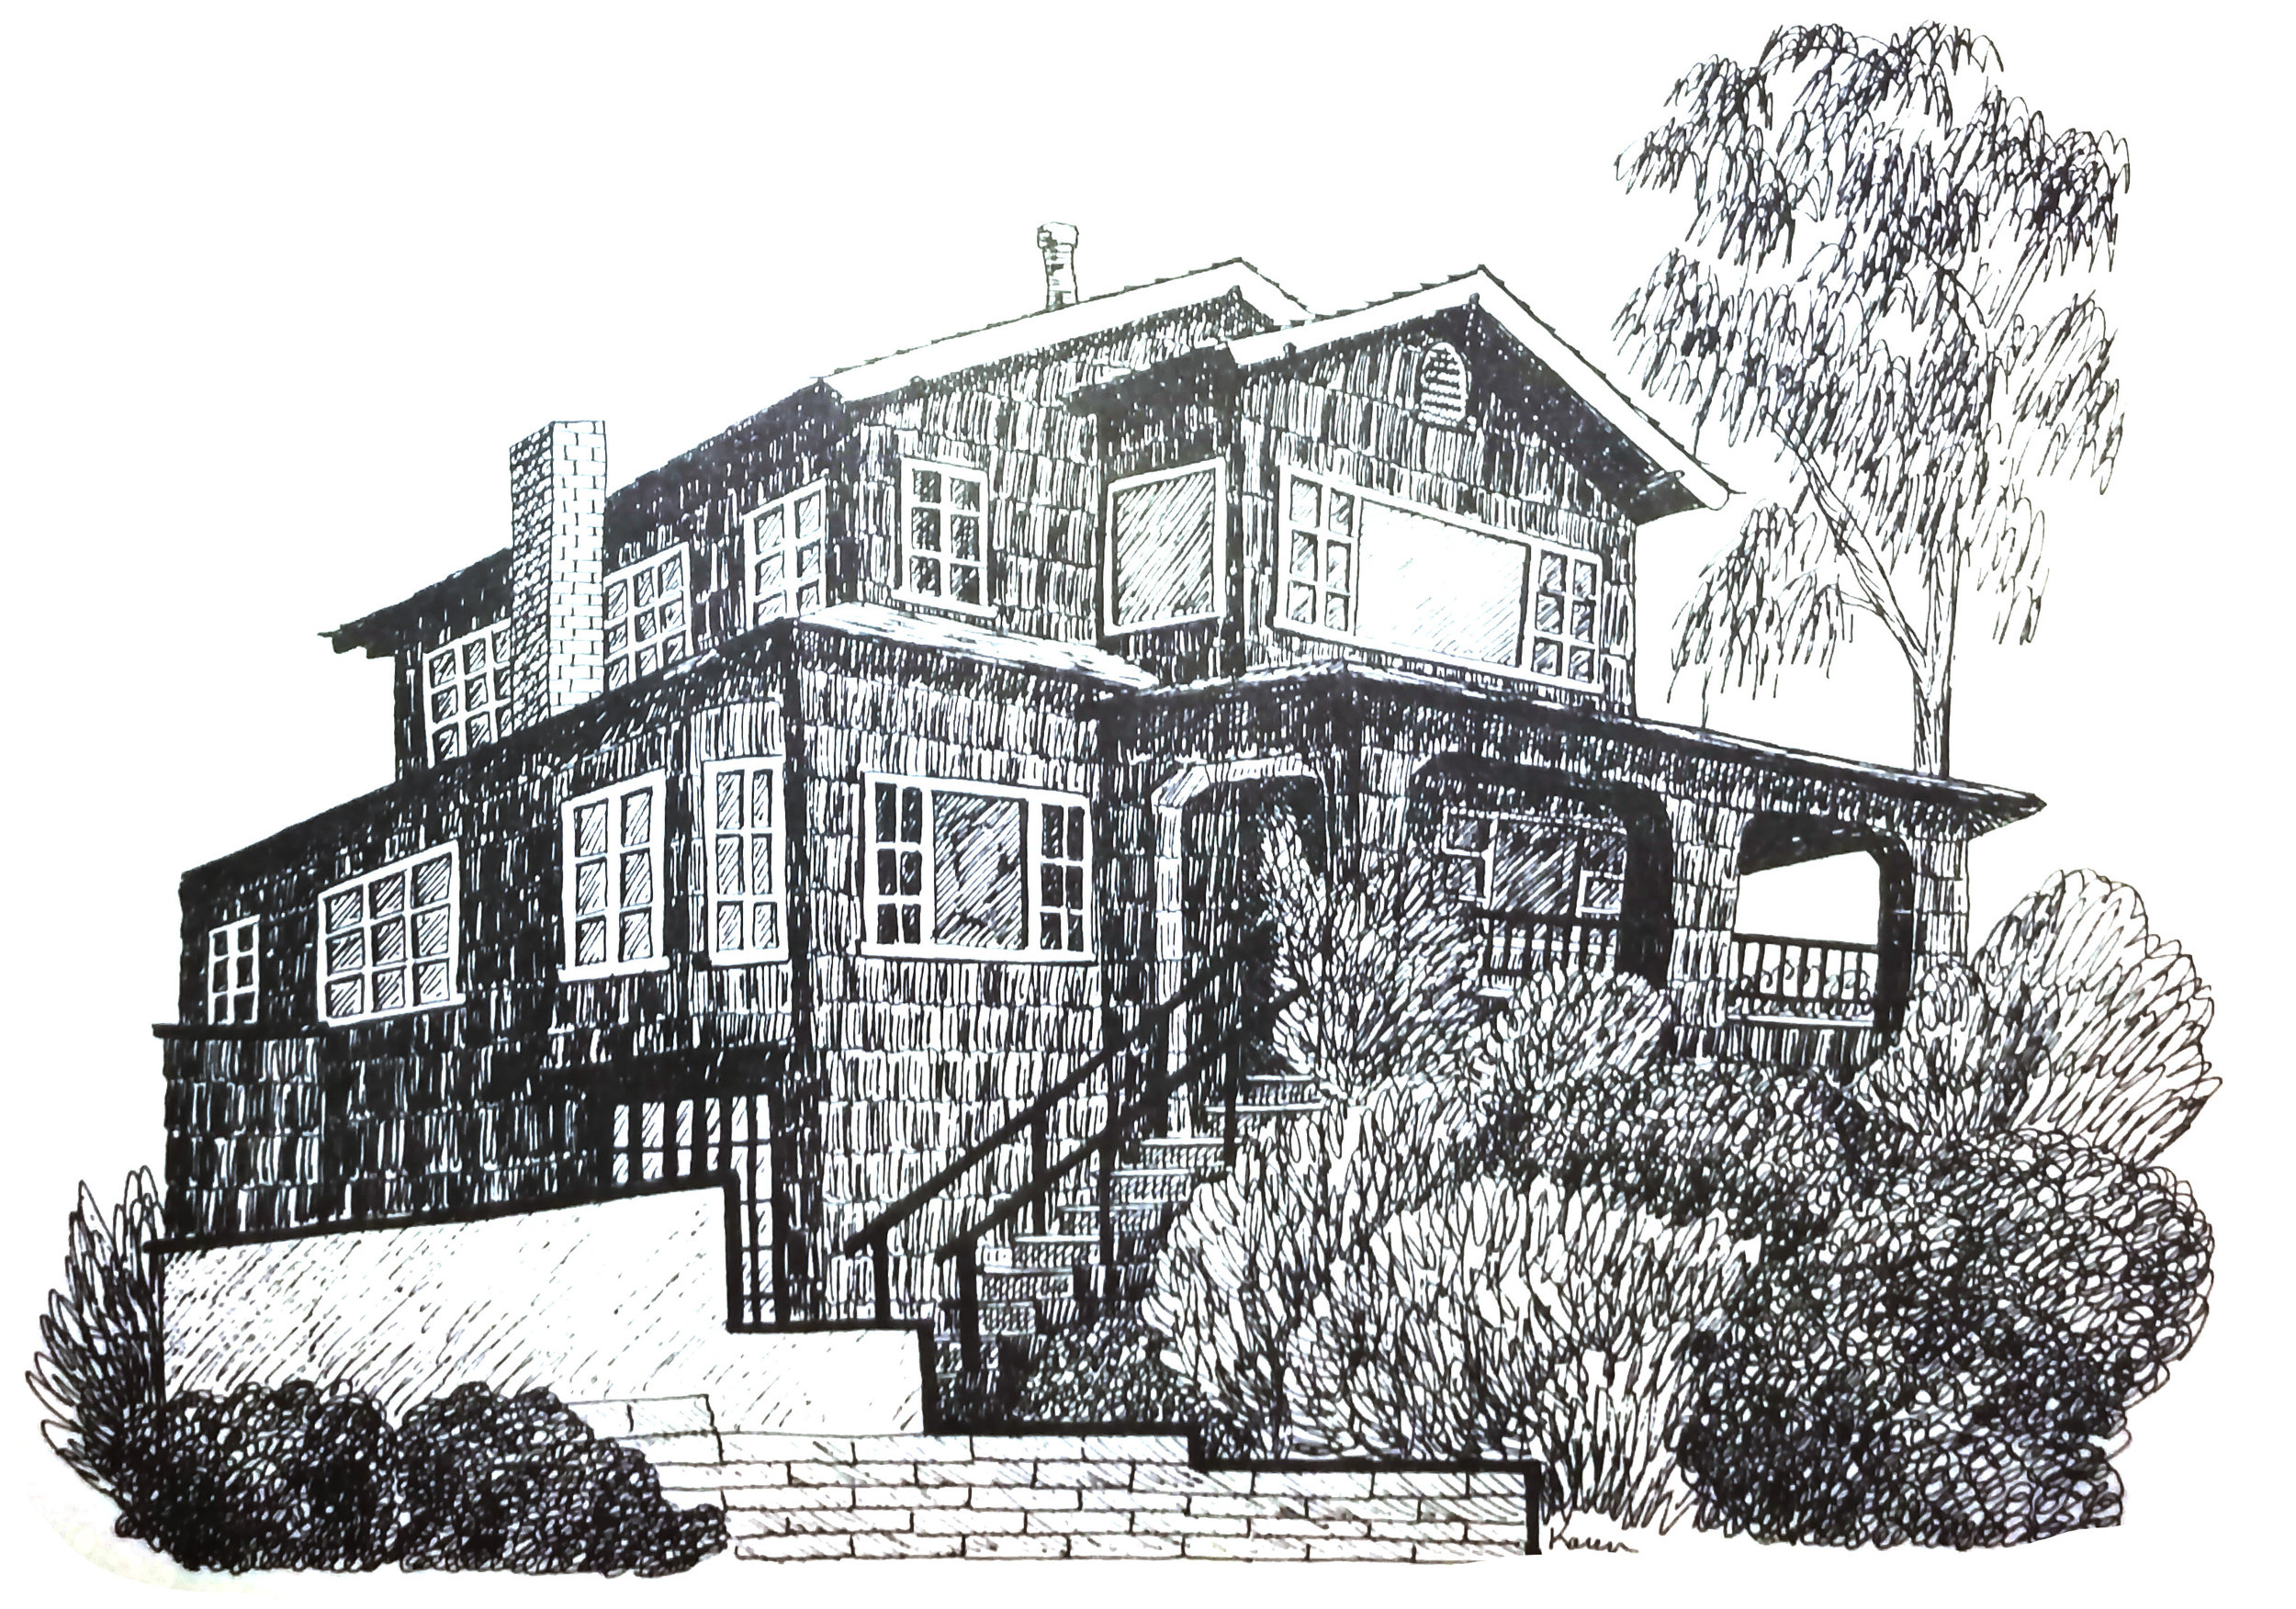 2192 Ocean Way - This Large Craftsman home was built in the Summer of 1927 for E.H. Newland of Hollywood.